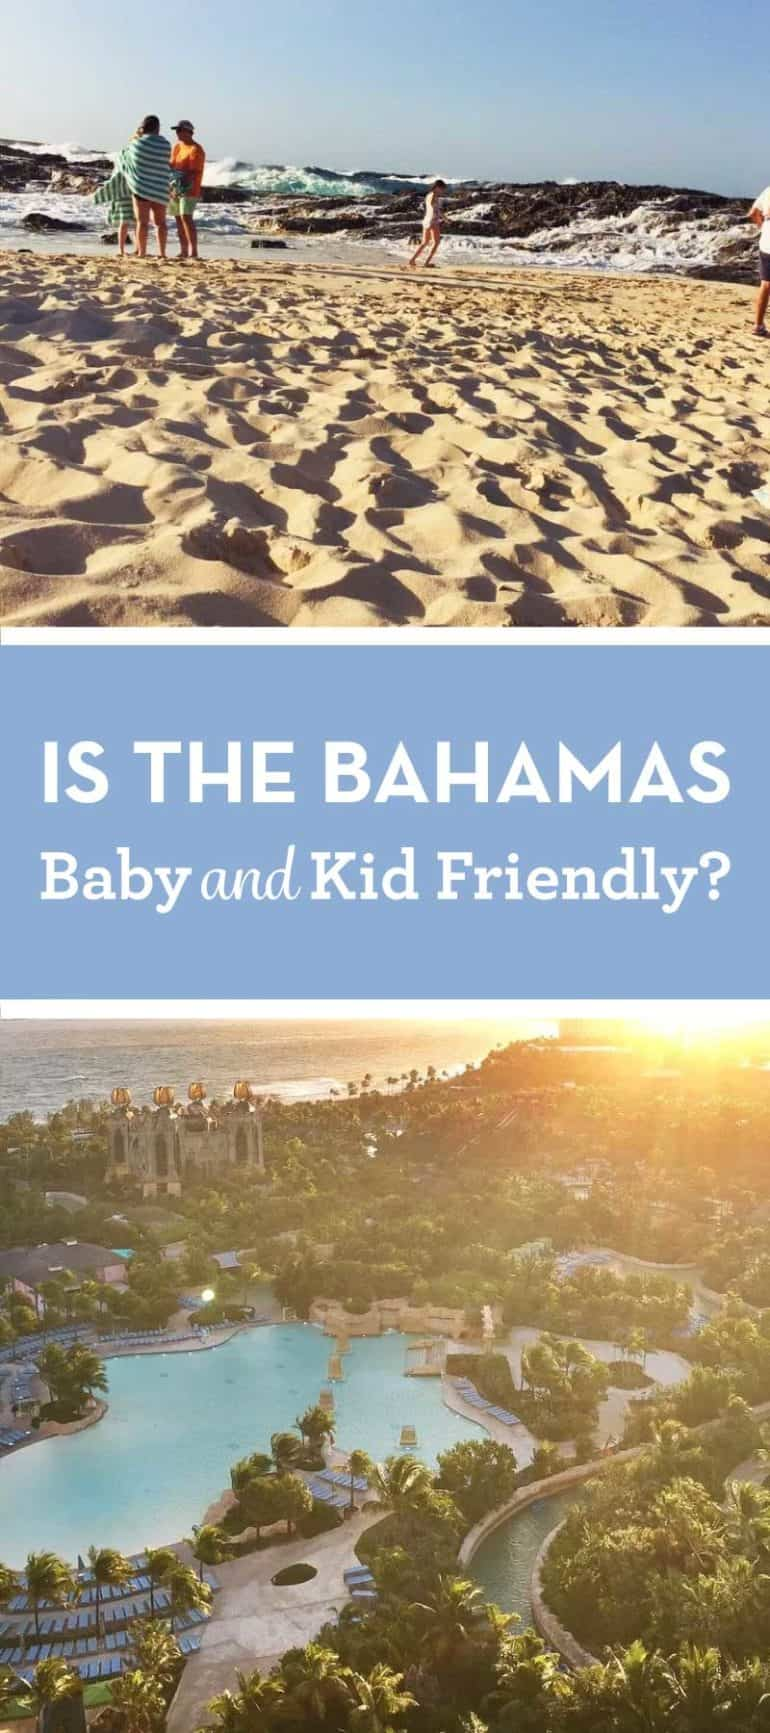 Want to know how baby and family friendly the Bahamas is? Here's a rundown of the good, the bad and the awesome.